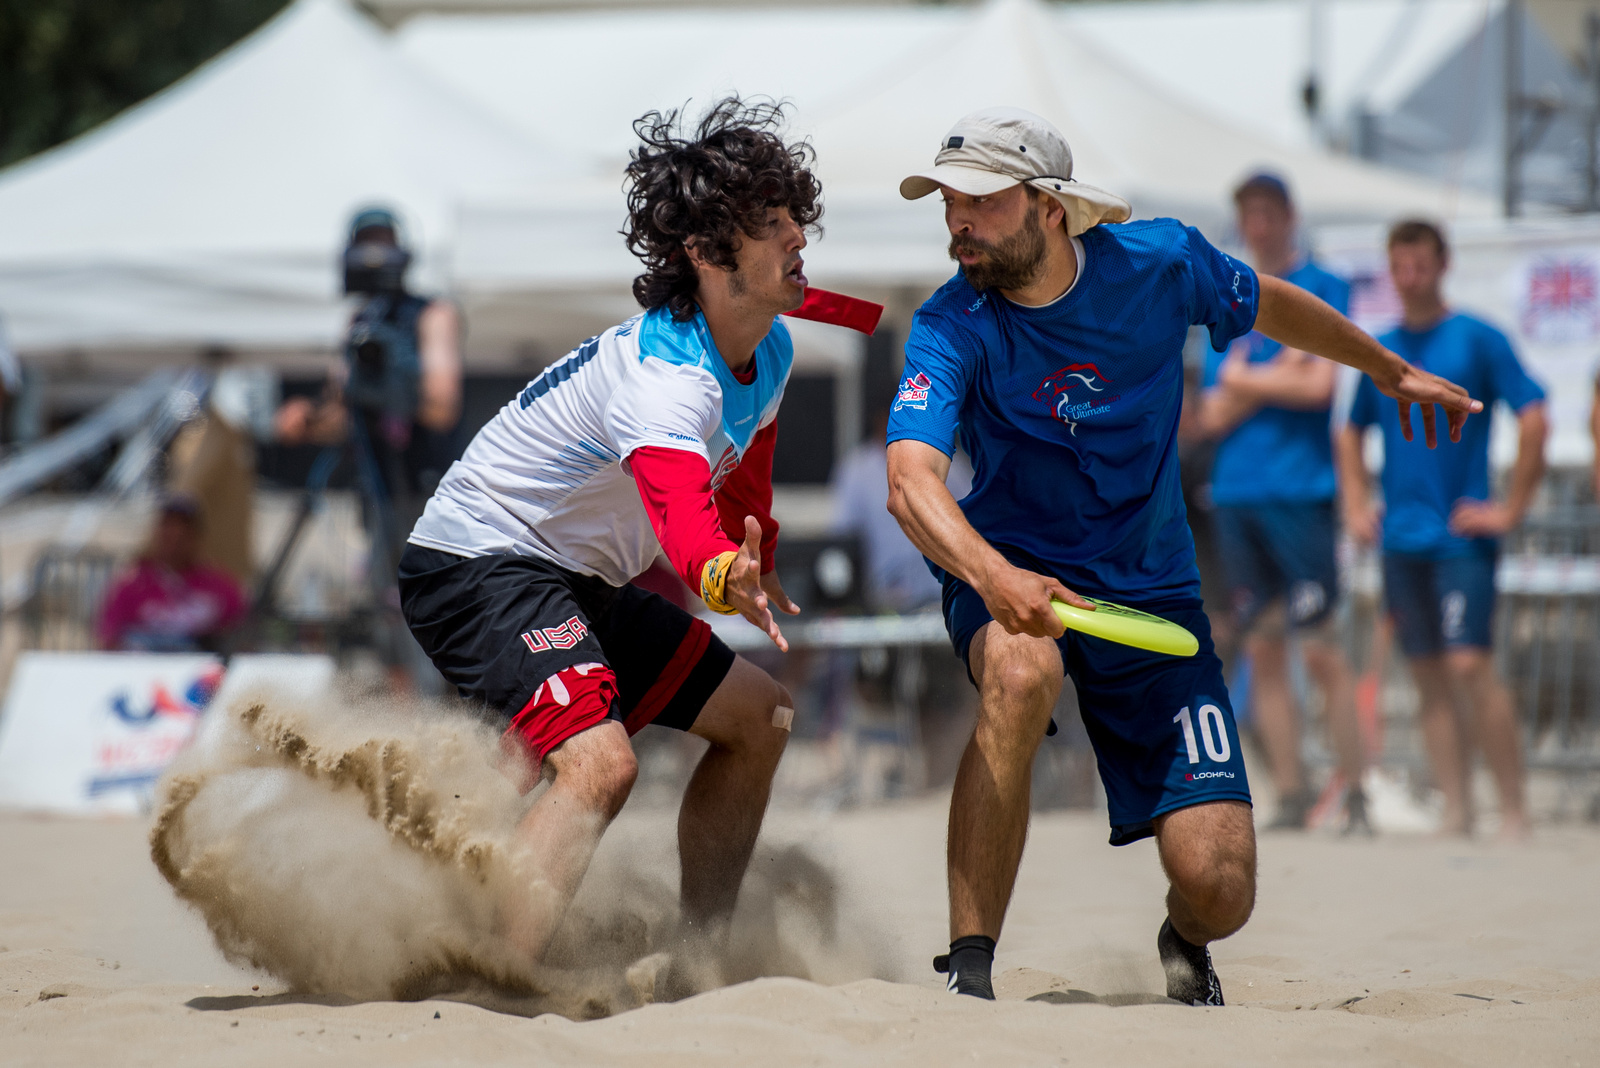 Video Thumbnail: 2017 World Championships of Beach Ultimate, Men's Gold Medal Game: USA vs. Great Britain